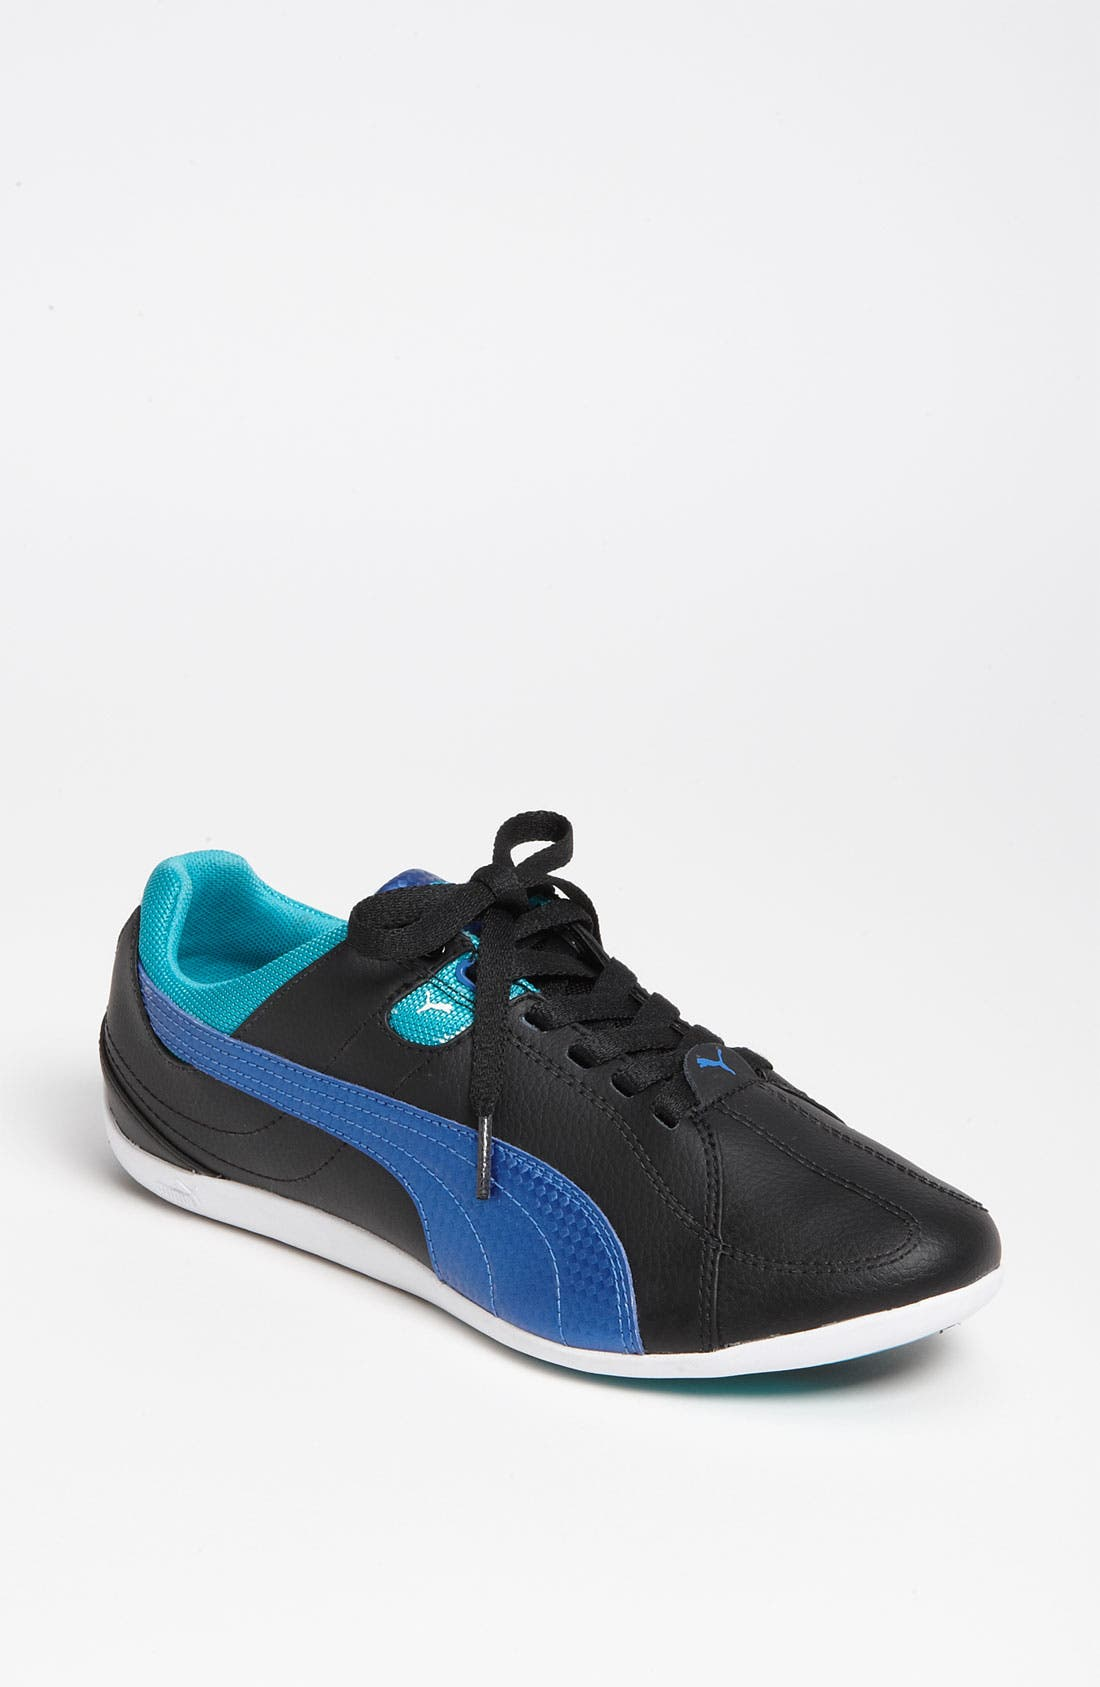 Main Image - PUMA 'Track Cat' Sneaker (Women)